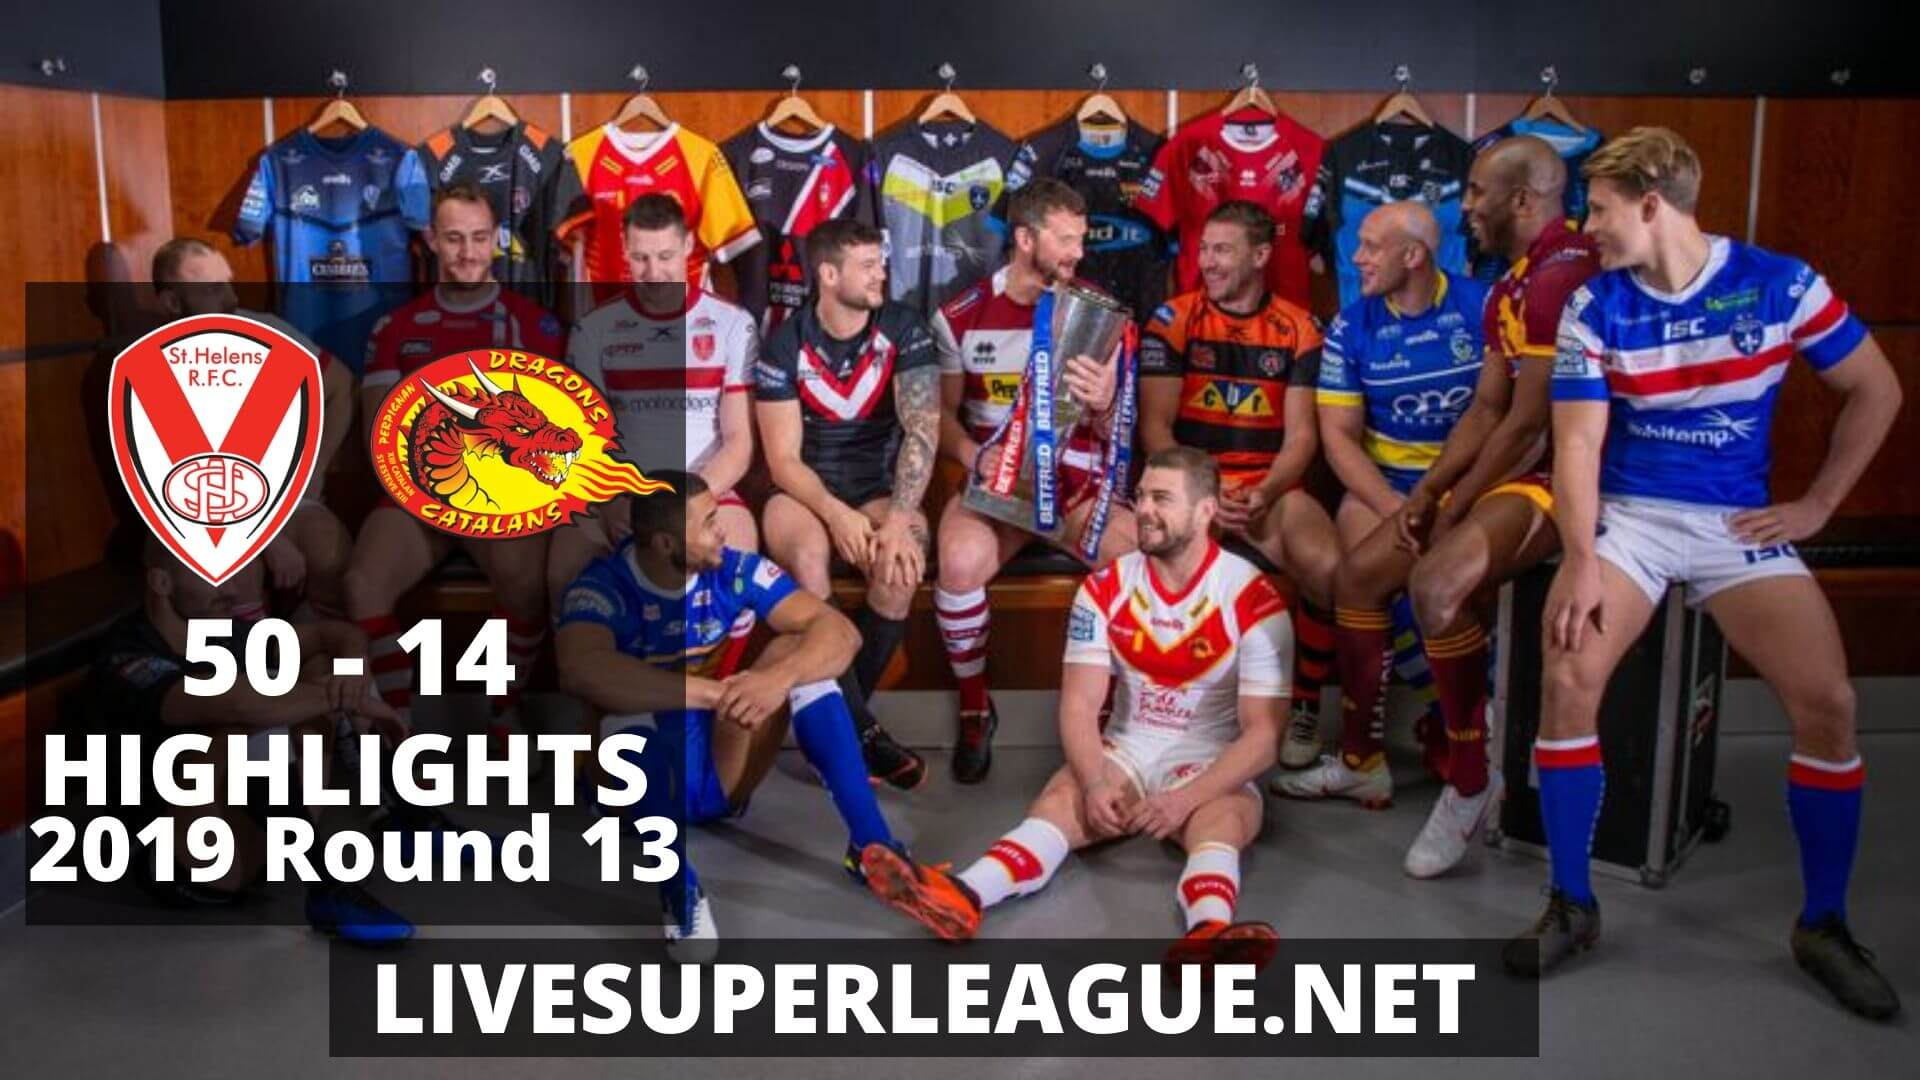 St Helens Vs Catalans Dragons Highlights 2019 Round 13